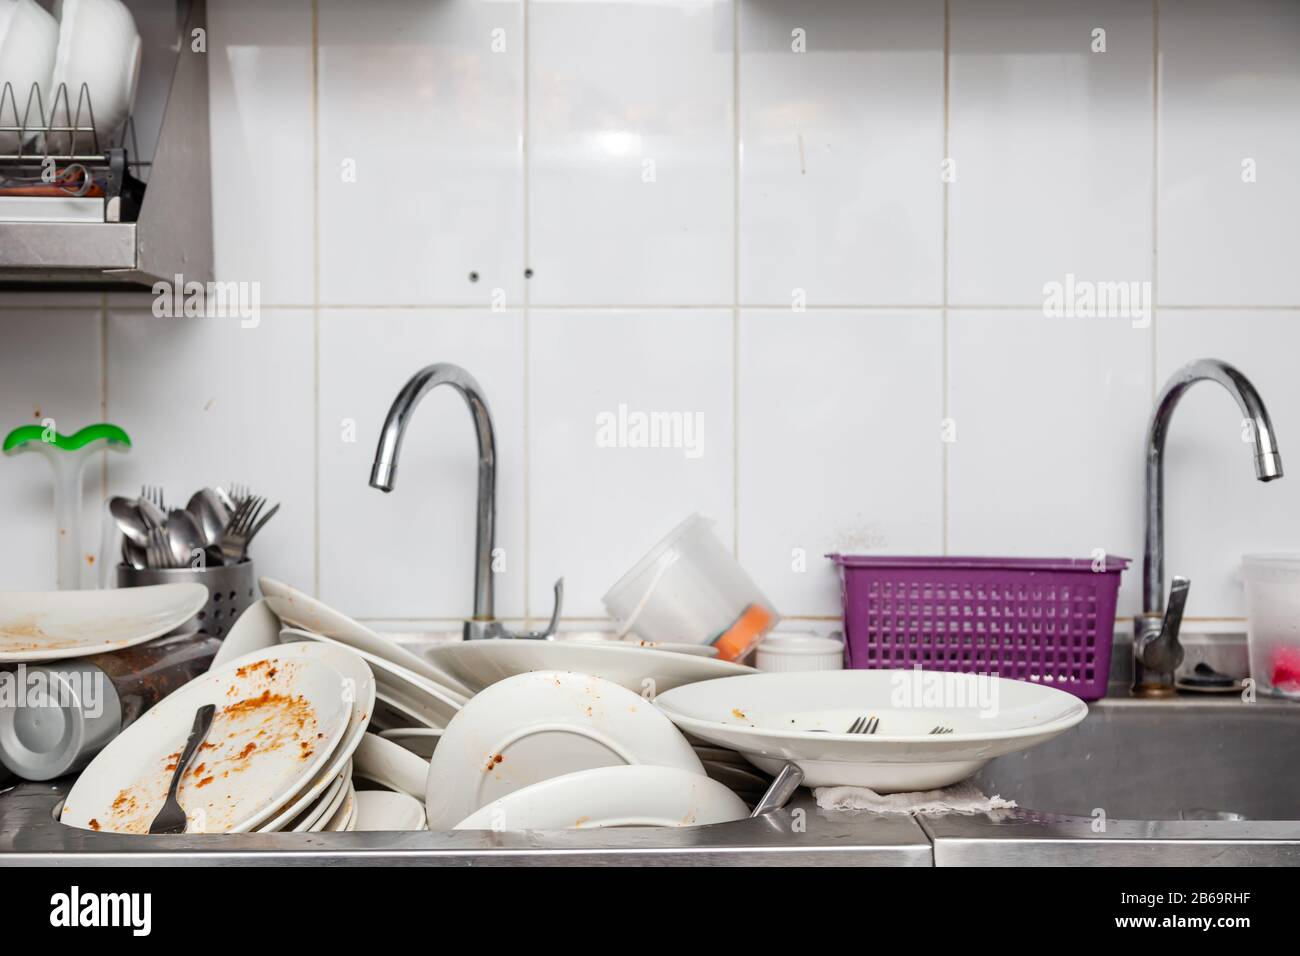 Large Metal Sink With Dirty Dishes In Professional Restaurant Kitchen Stack Of Messy White Plates Crockery Appliances With Leftover Food Water Tap Stock Photo Alamy